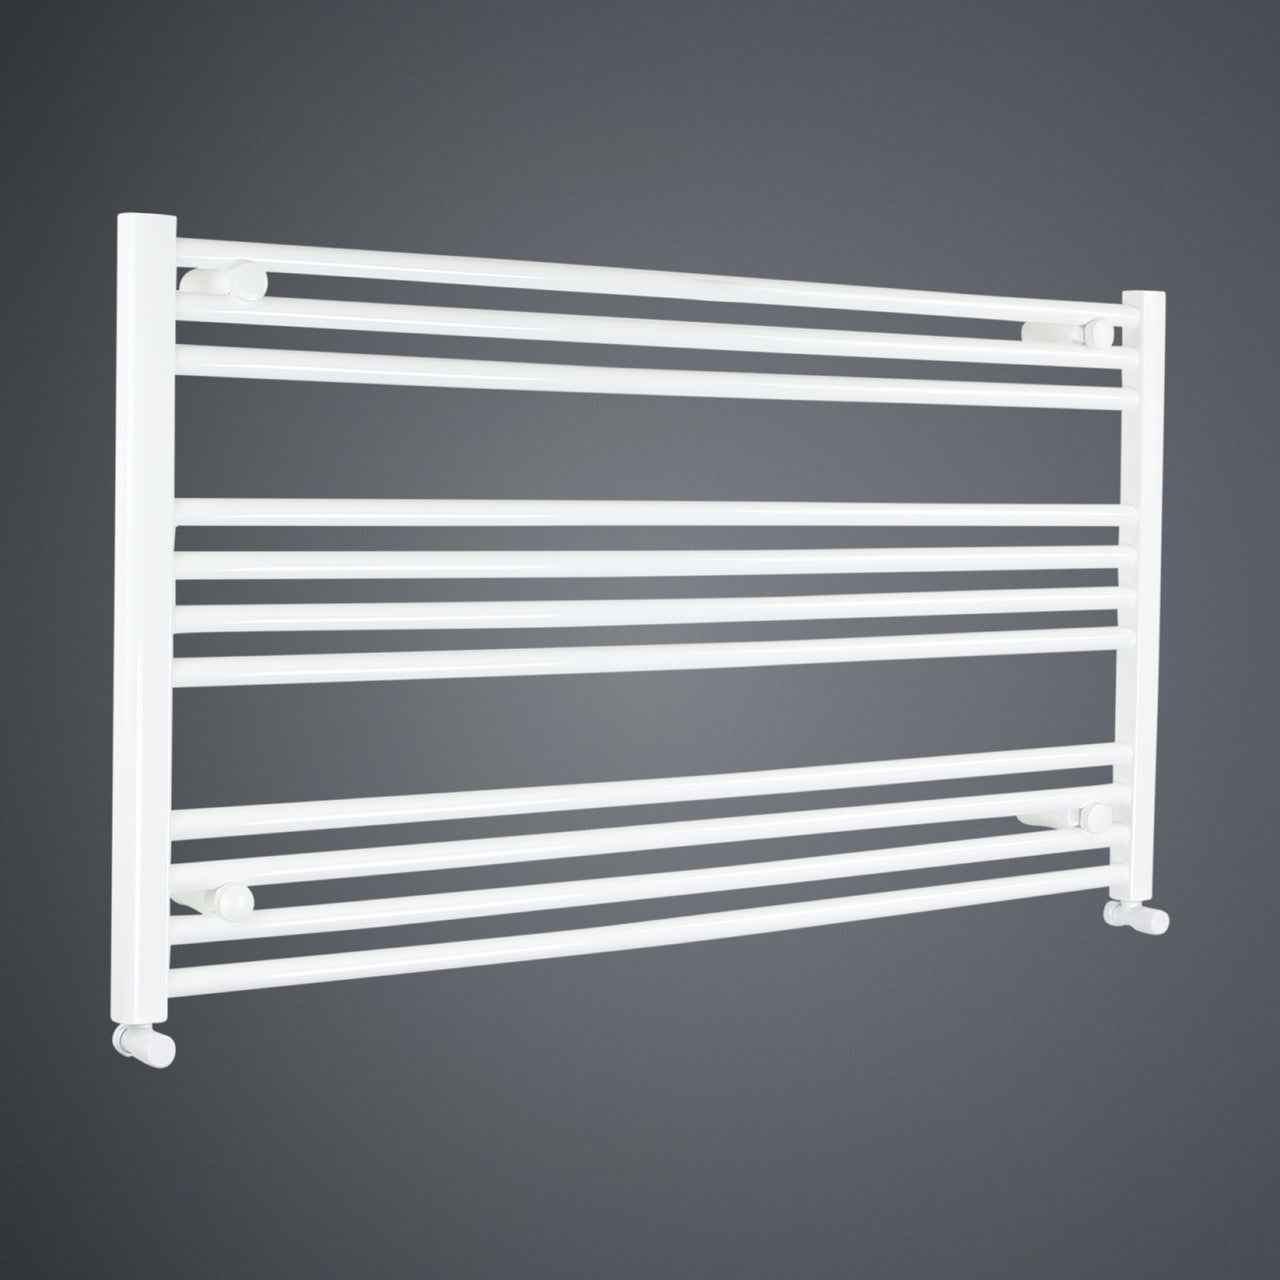 1300mm Wide 600mm High Flat White Heated Towel Rail Radiator HTR,With Angled Valve